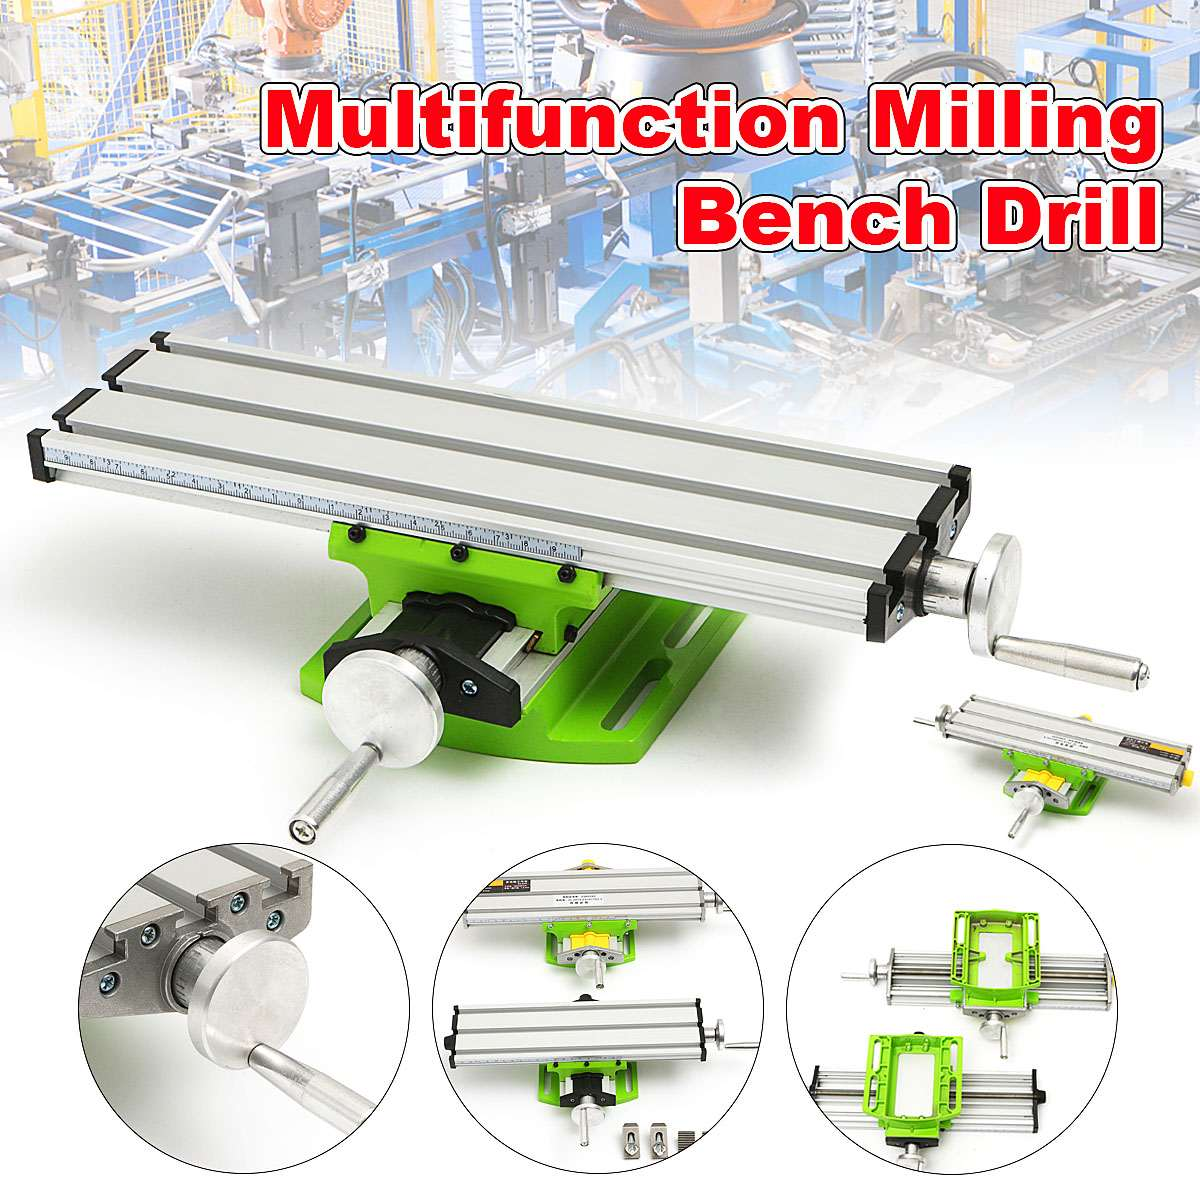 New 2 Axis Milling Machine Compound Table Worktable Adjustment X-Y Milling Working Cross Table Bench Vise Drilling Table BG6330 mini multifunctional cross working table bench vise manual tools x y axis adjustment table for drilling milling machine bg 6330